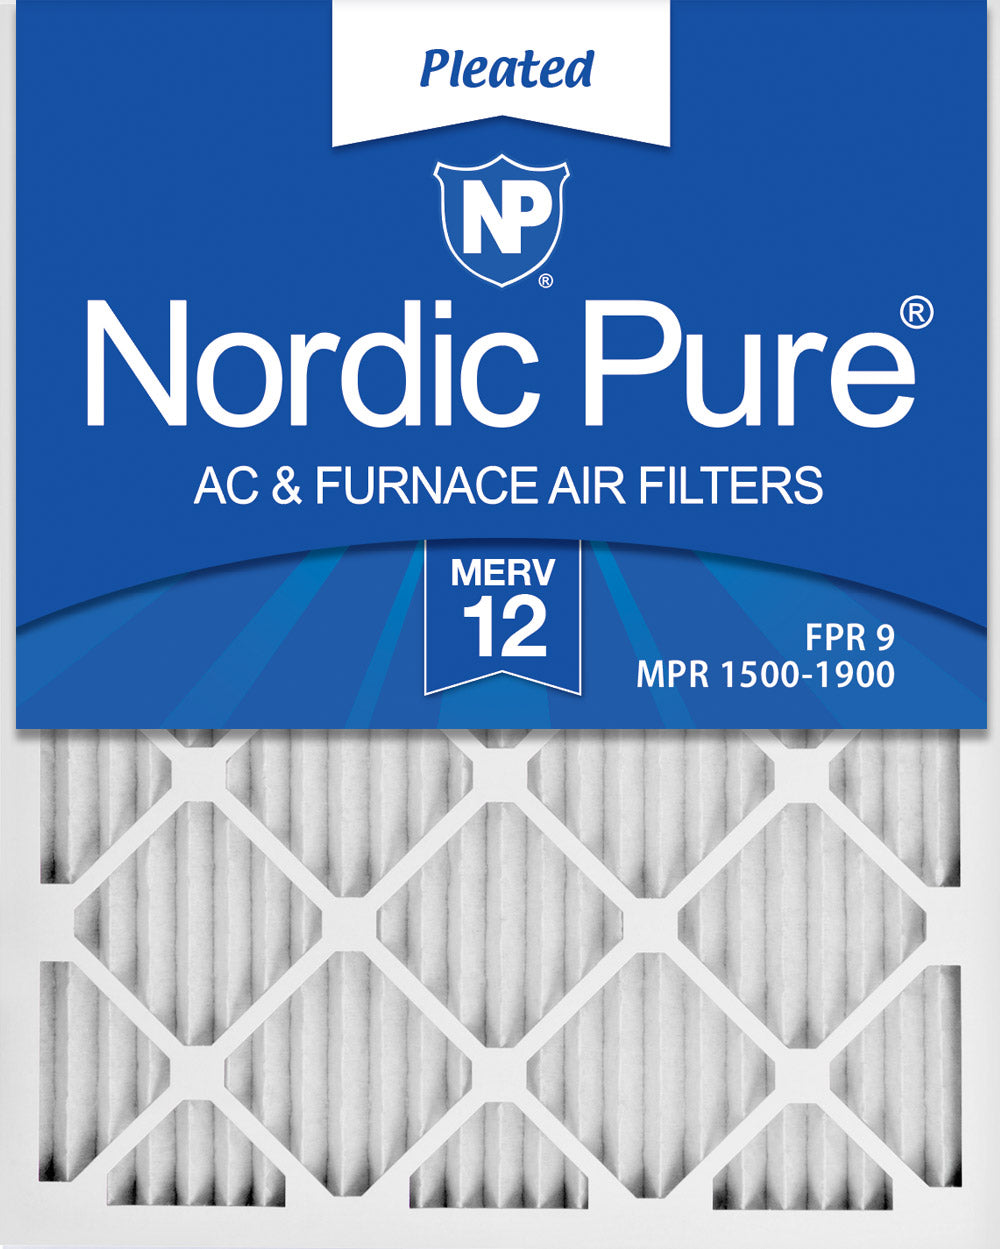 Nordic Pure 8x24x1 Exact MERV 10 Pleated AC Furnace Air Filters 2 Pack